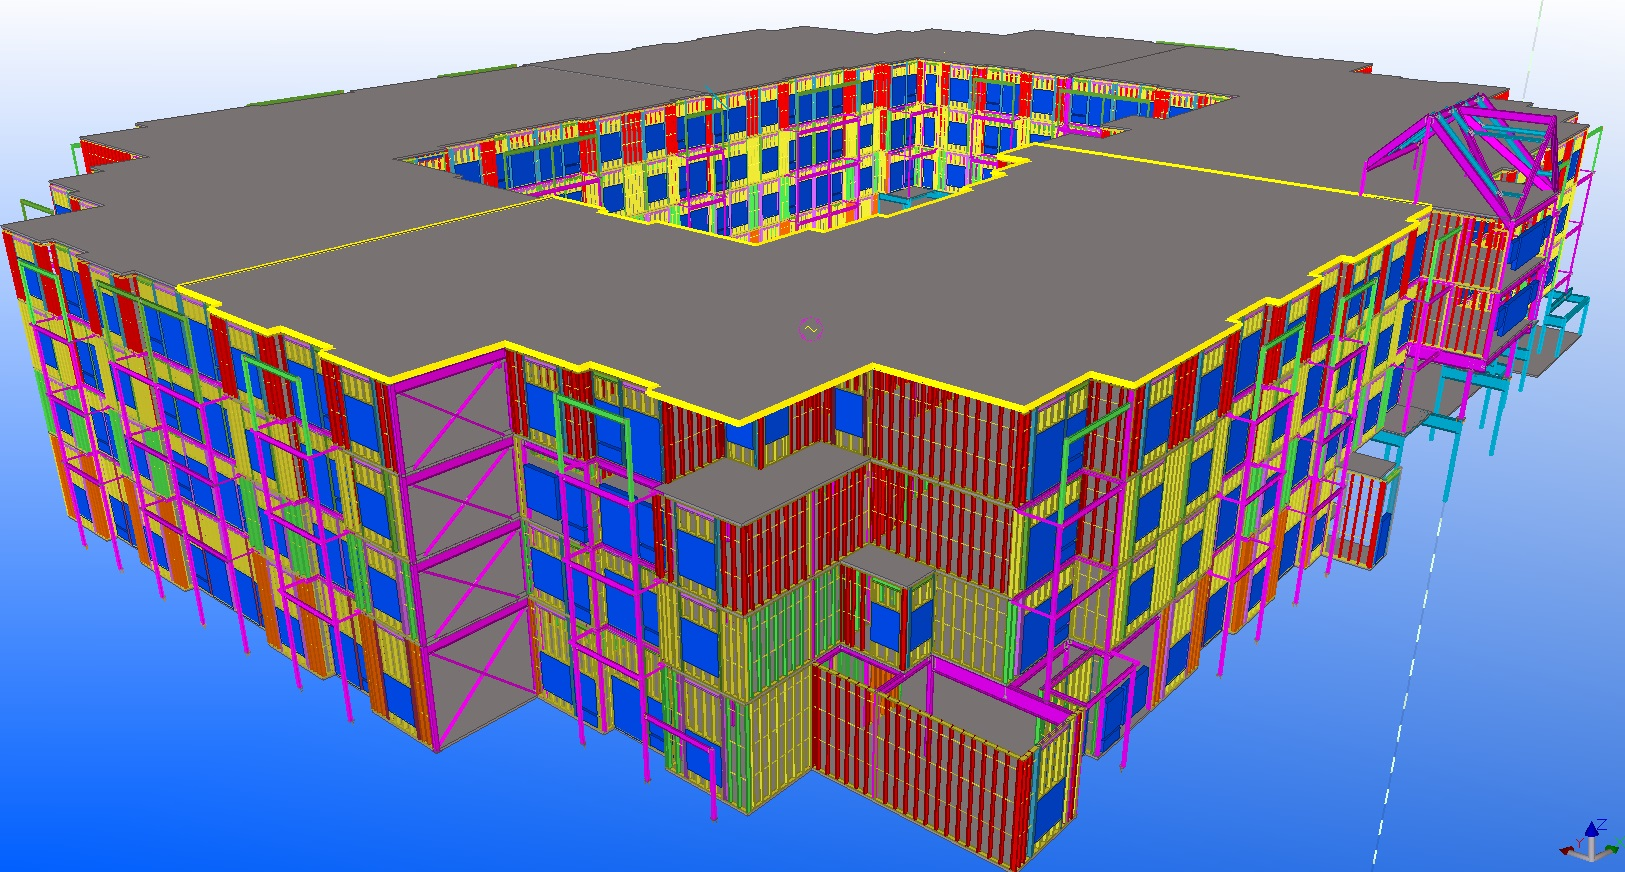 With Our Detailers, Light Weight Building Systems Inc. Uses Advanced  Software To Provide Accurate And Constructible 3D Models Of Our Steel  Structures.